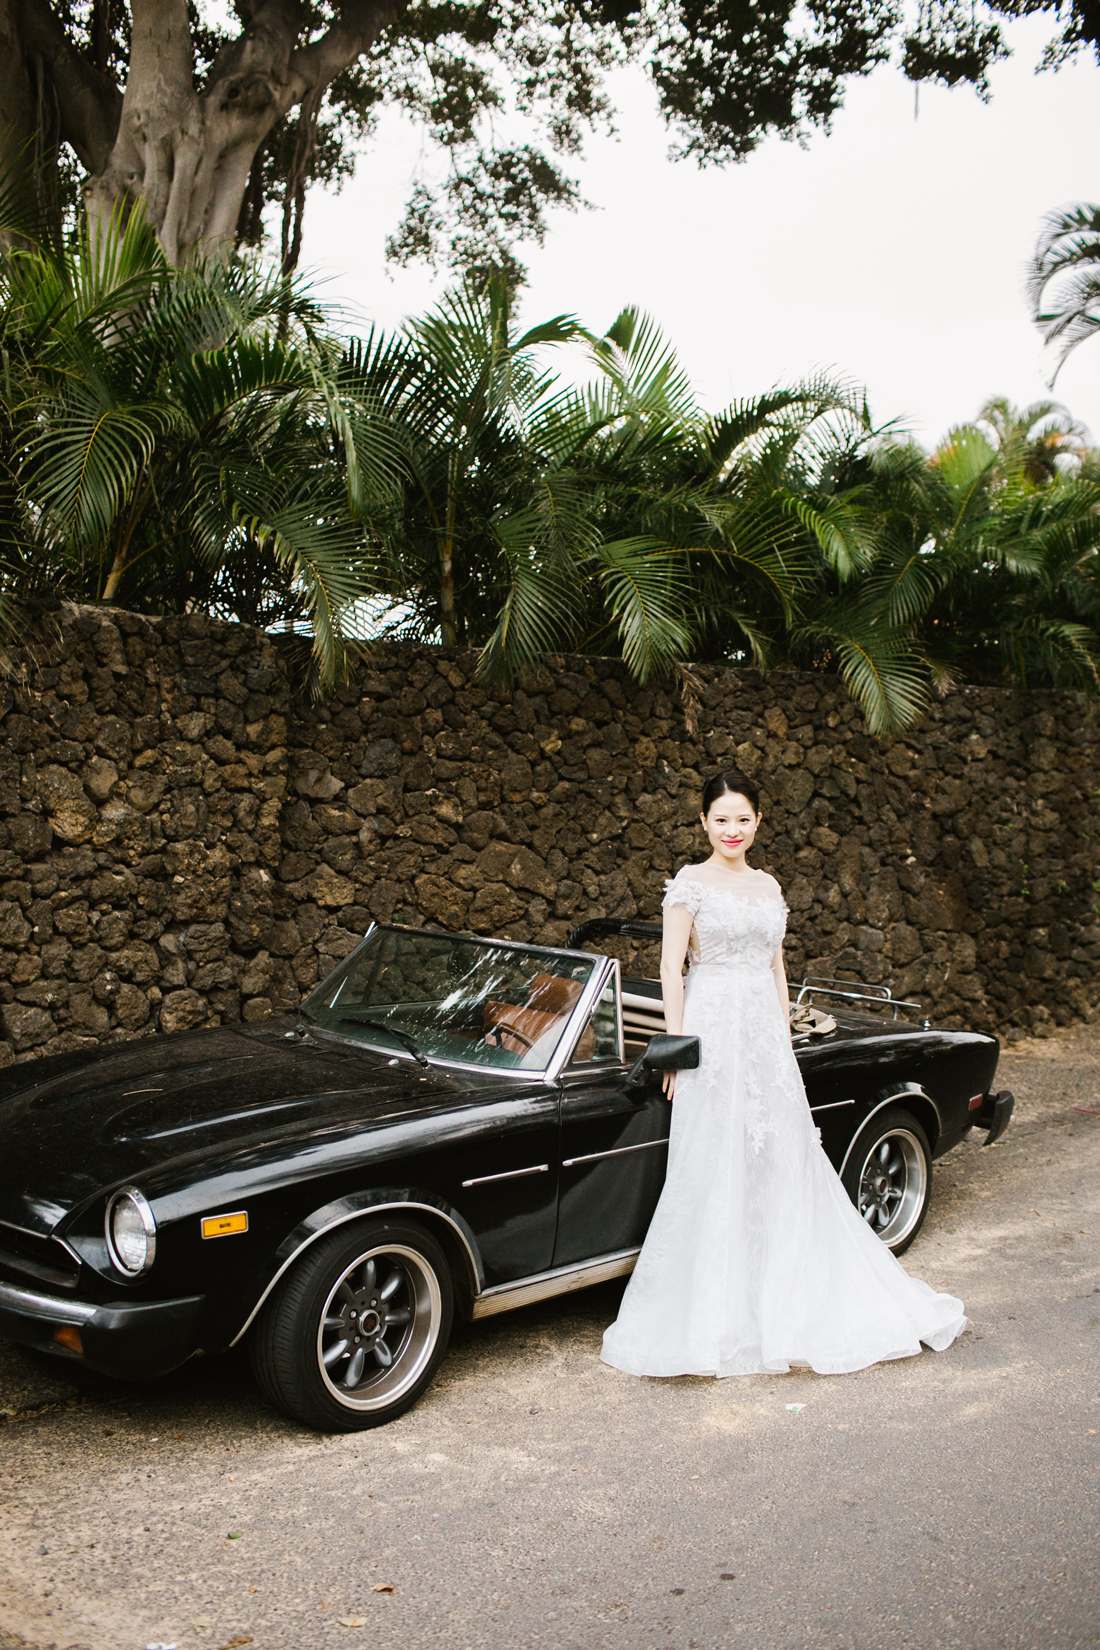 bride standing in front of black convertible car